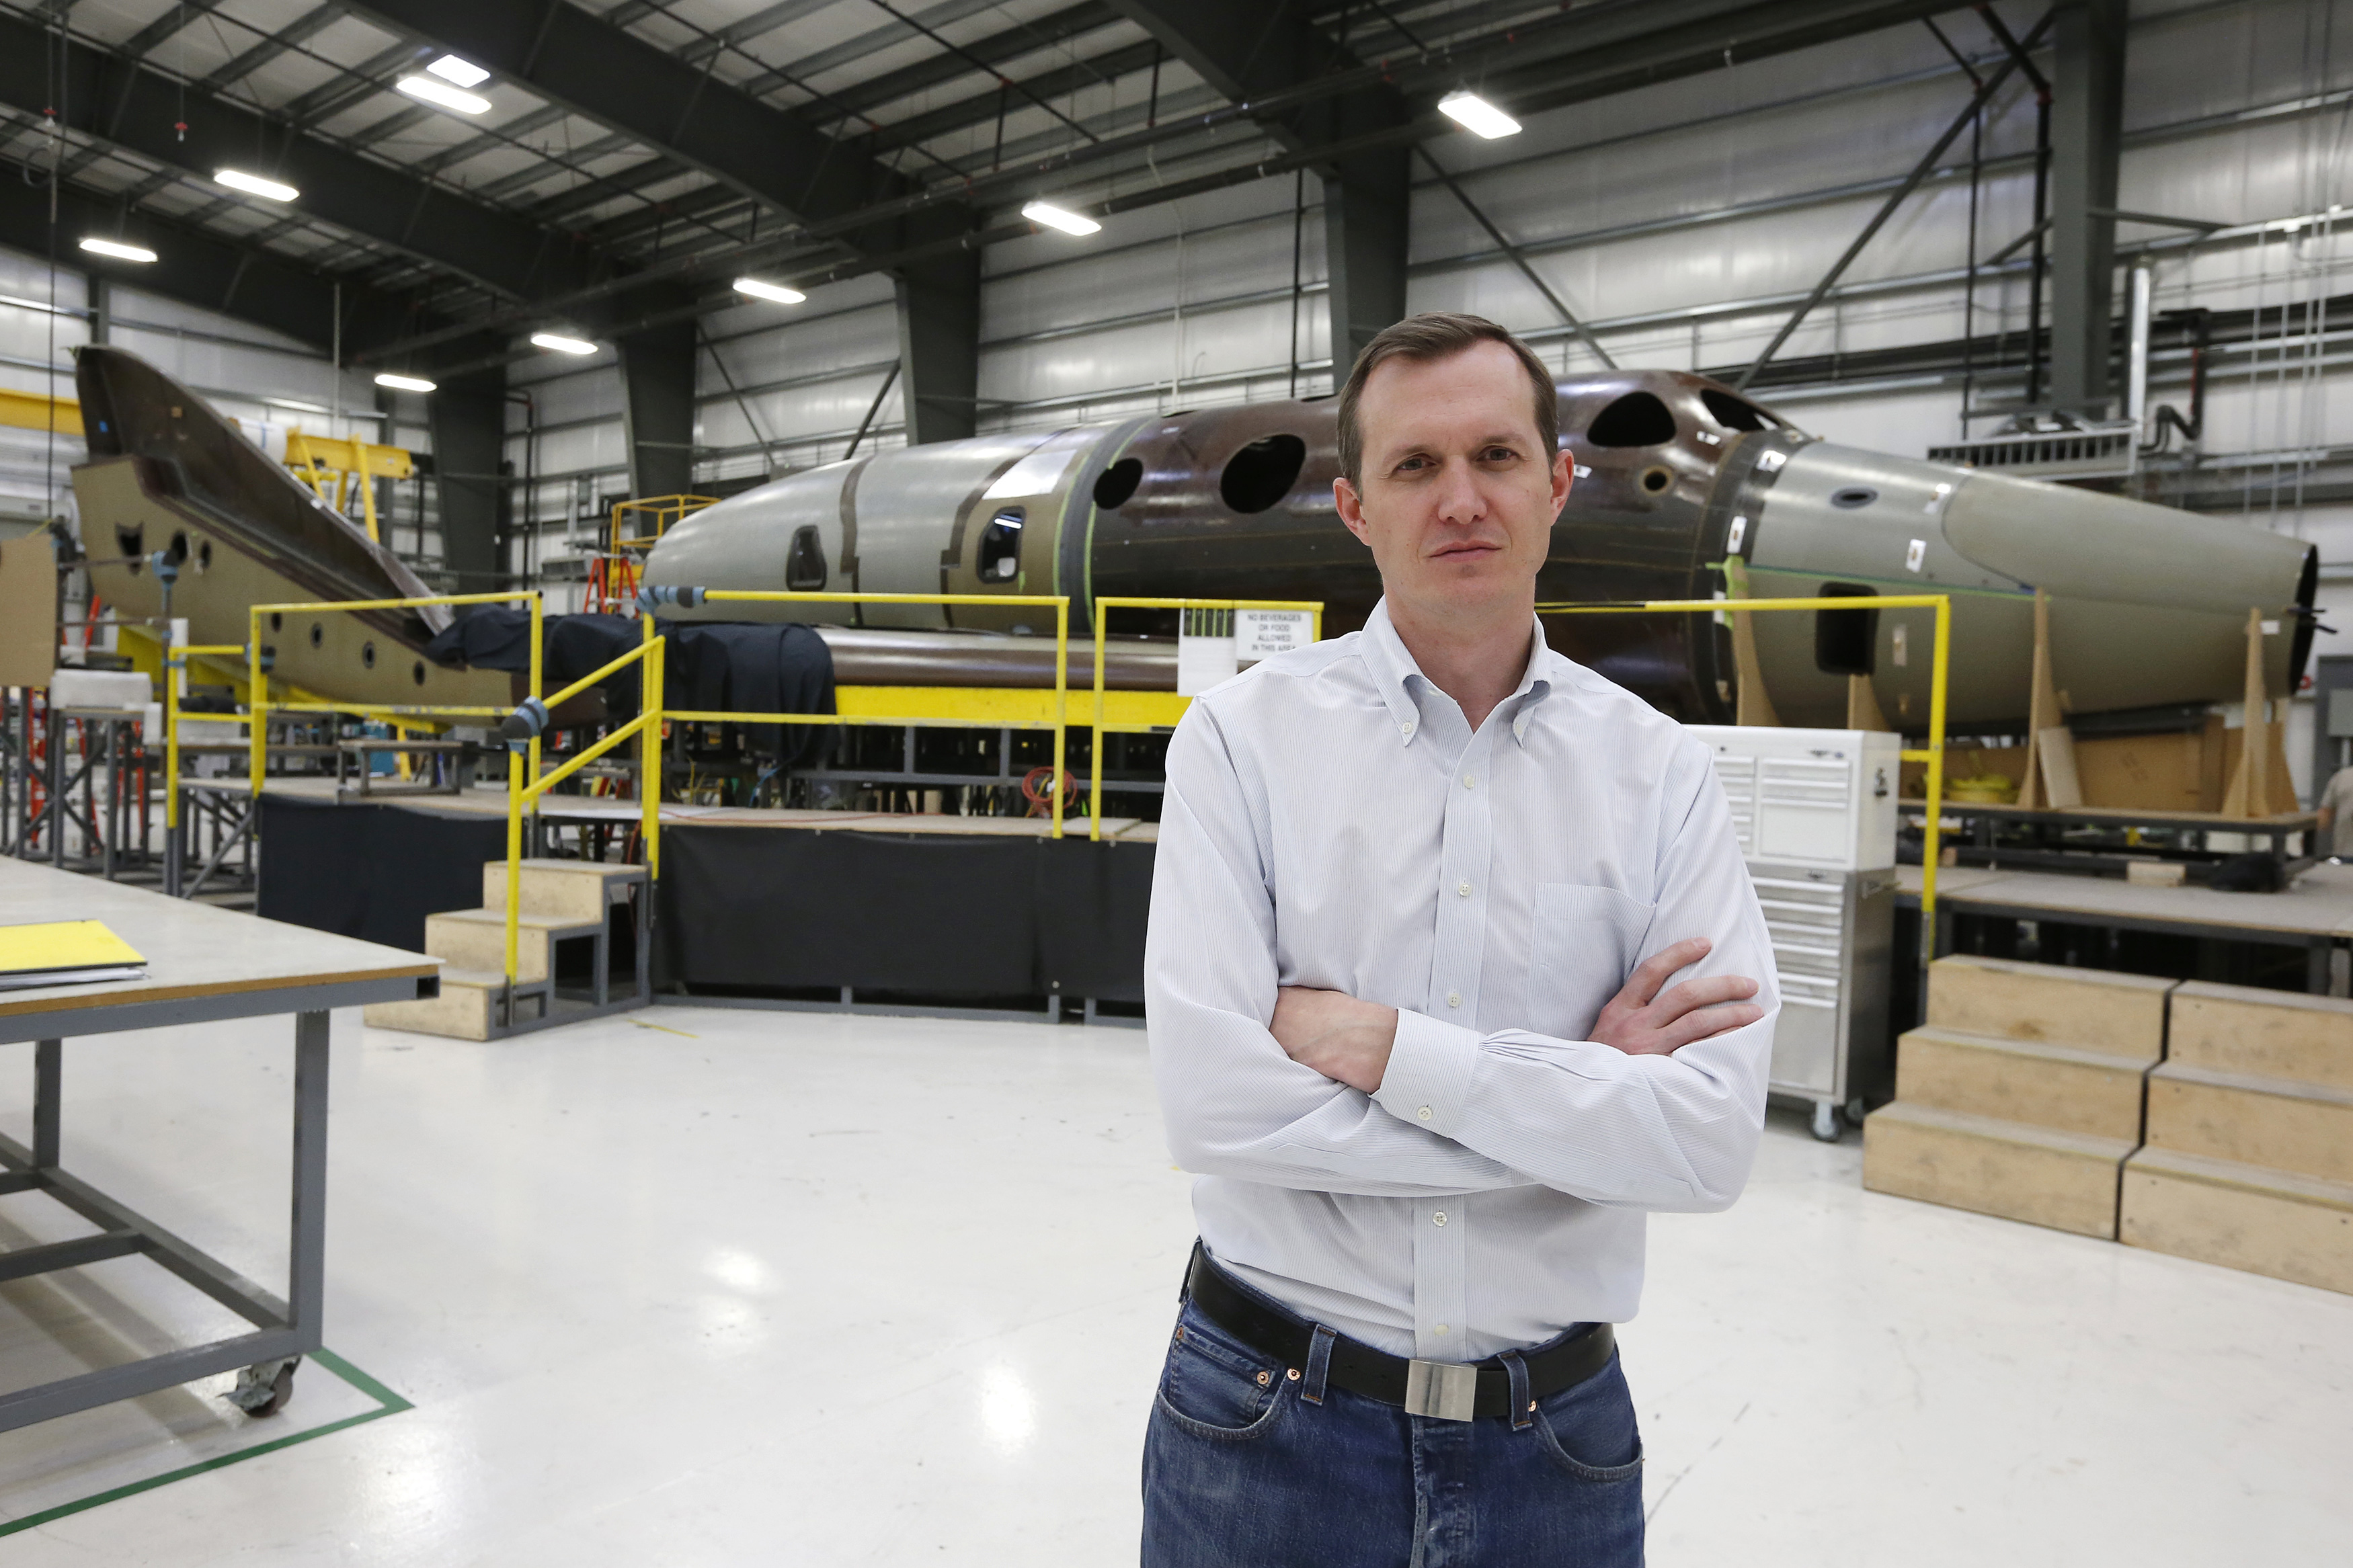 Virgin Galactic's CEO George T. Whitesides stands in front of their new spaceship N202VG, which the company began building 2 and a half years ago, in a hangar at Mojave Air and Space Port in Mojave, California November 4, 2014. REUTERS/Lucy Nicholson